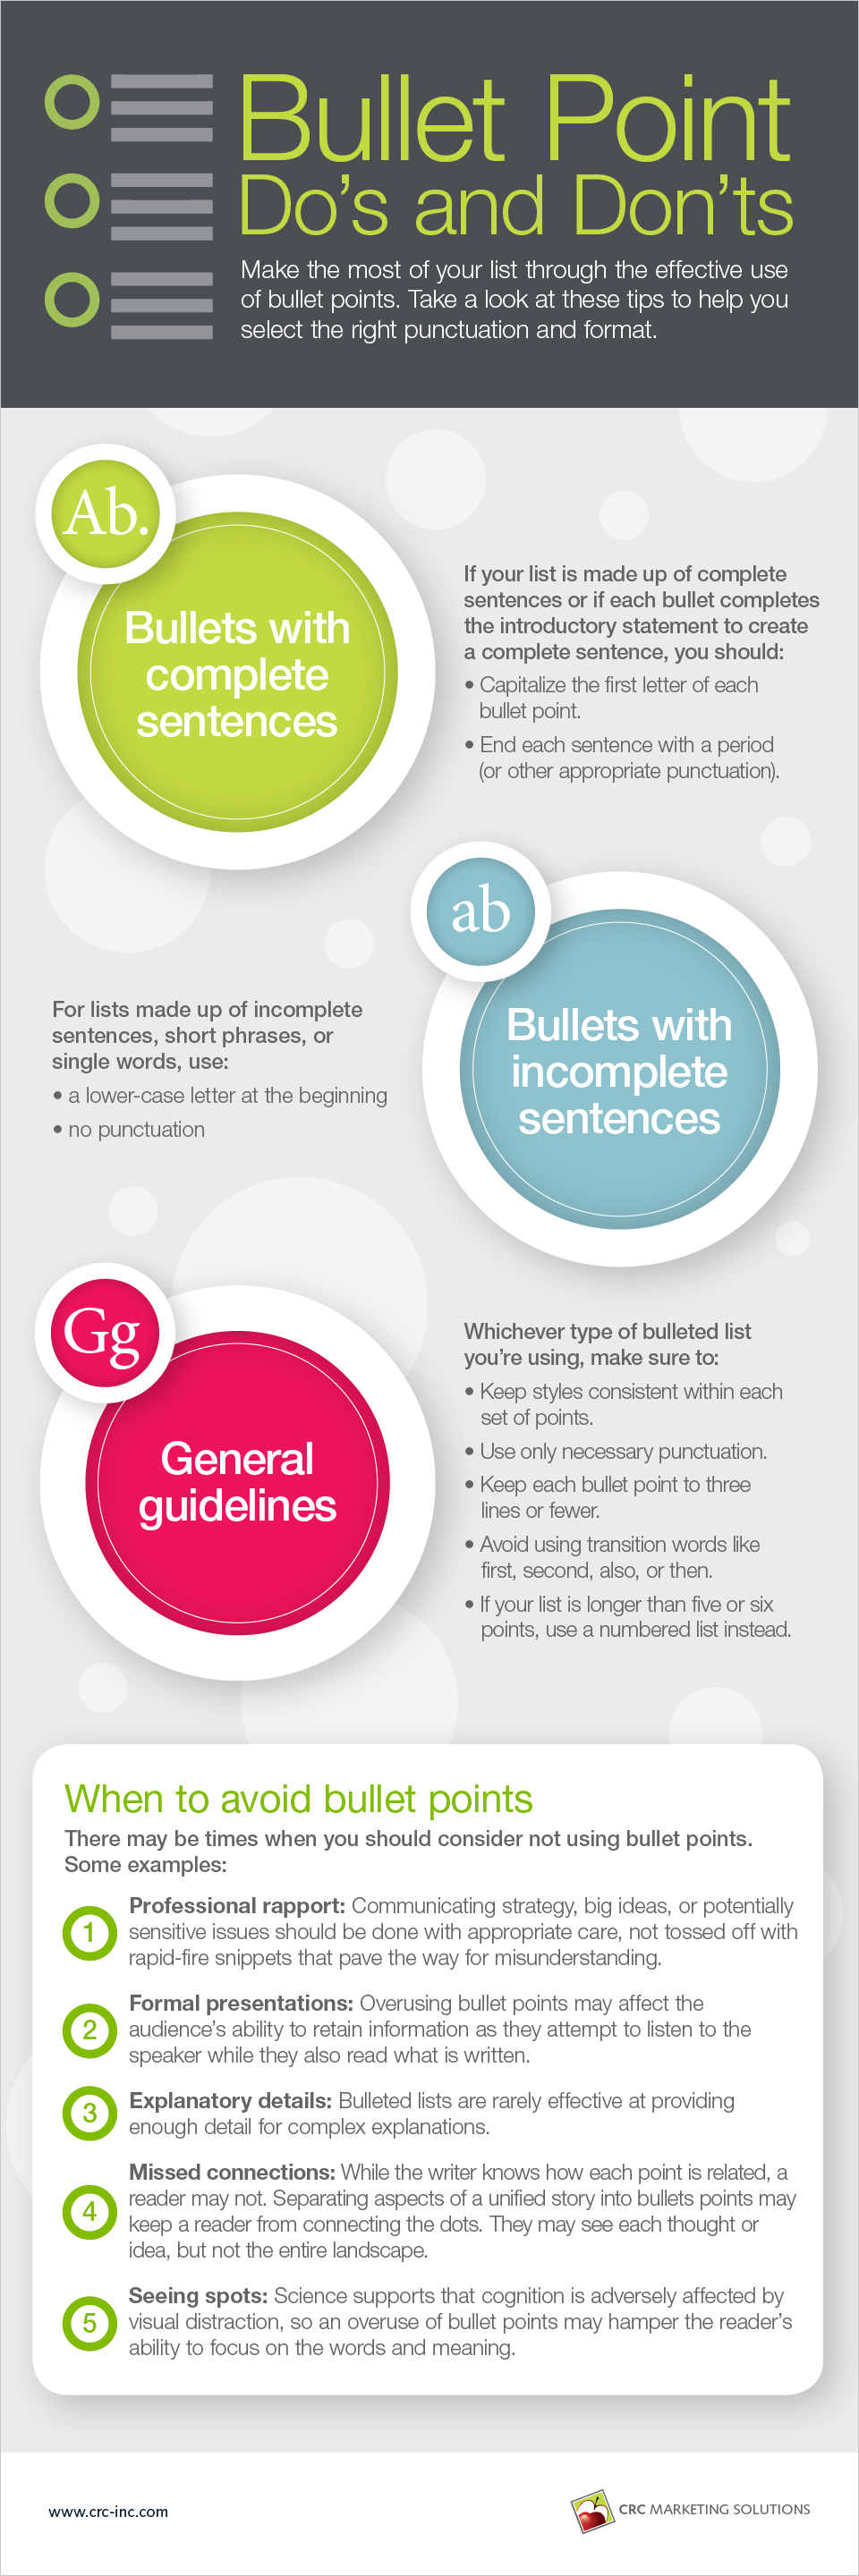 Bullet Point Do's and Don'ts Infographic